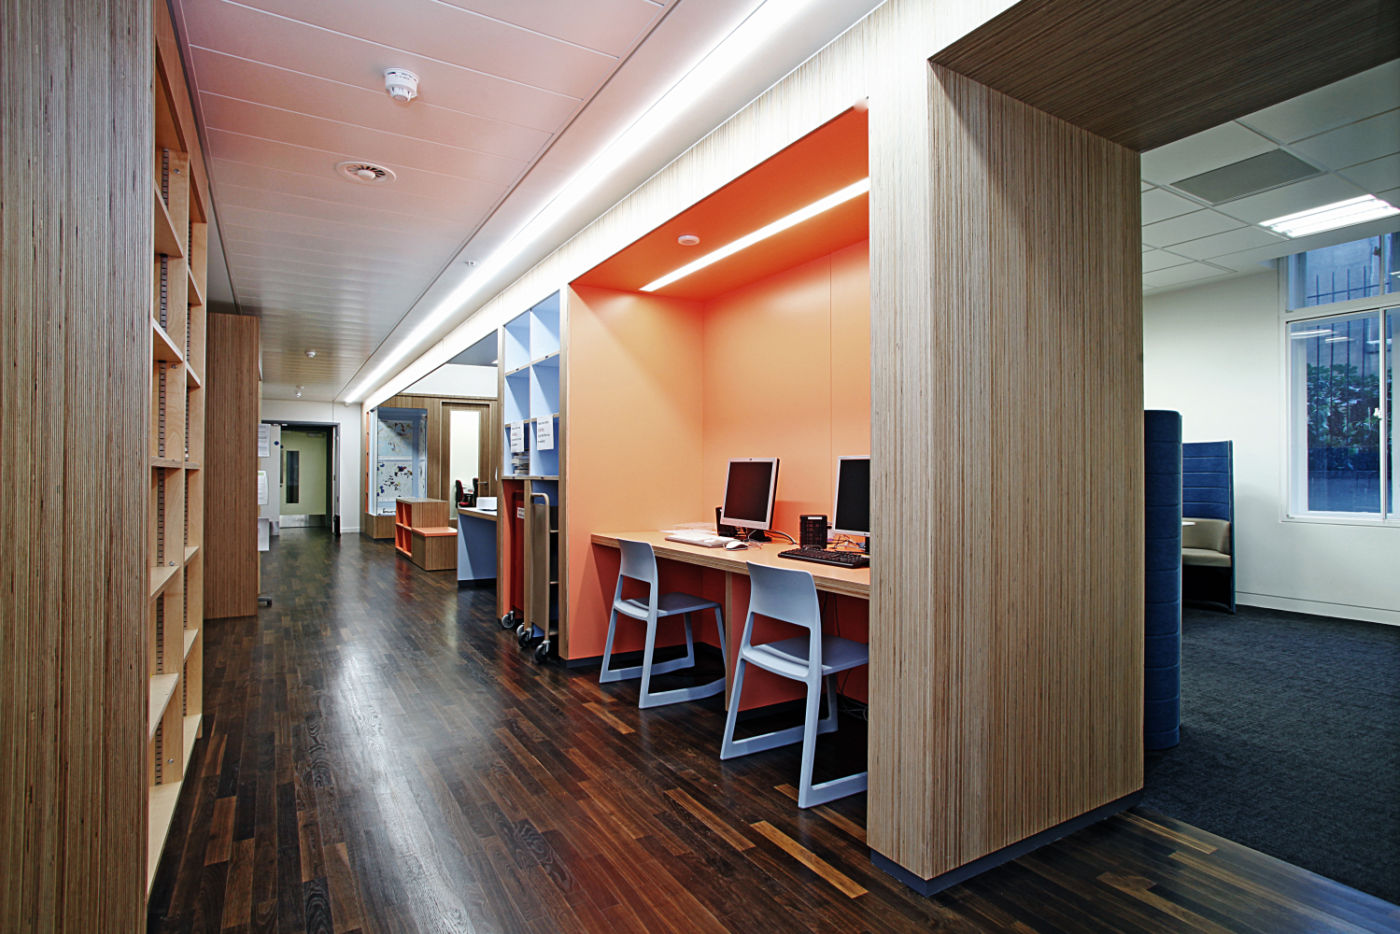 Computer stations in bright orange fit out